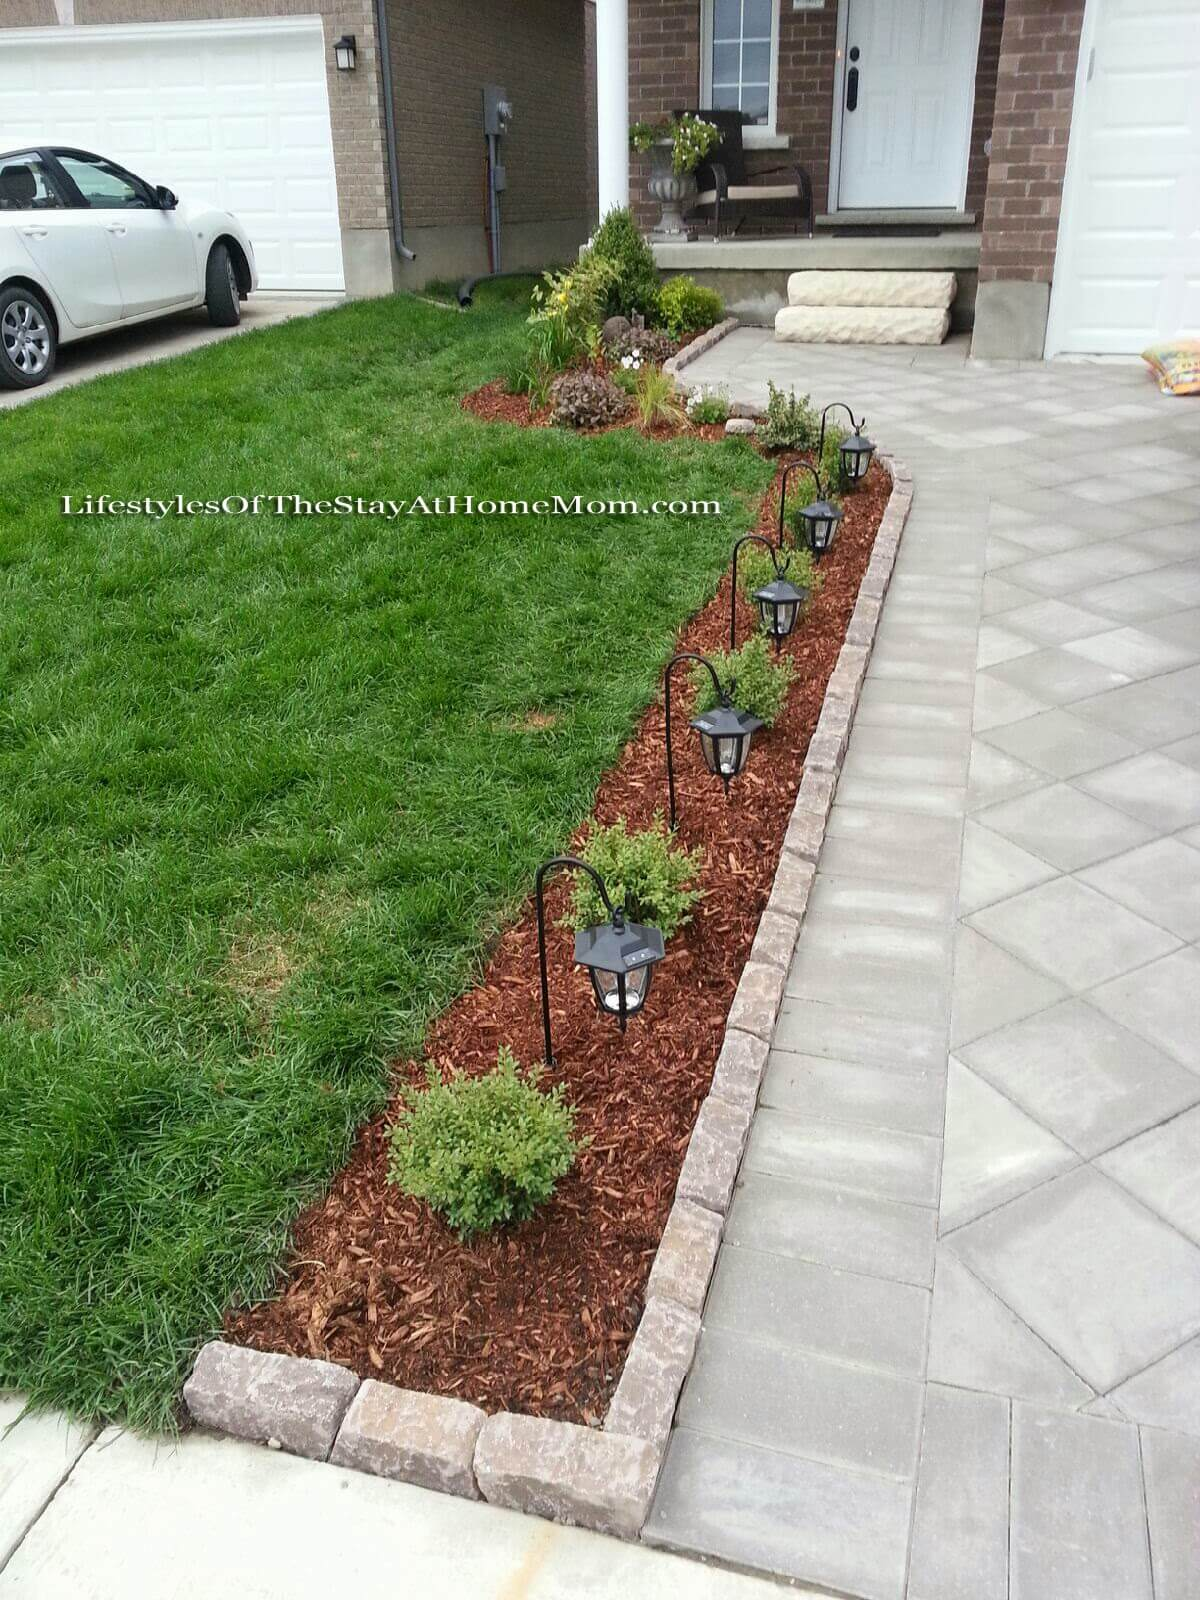 Horrible 2018 Landscape Pics Front Yard Lighted Driveway Bed Front Yard Landscaping Ideas Garden Designs outdoor Landscaping Pics Front Yard